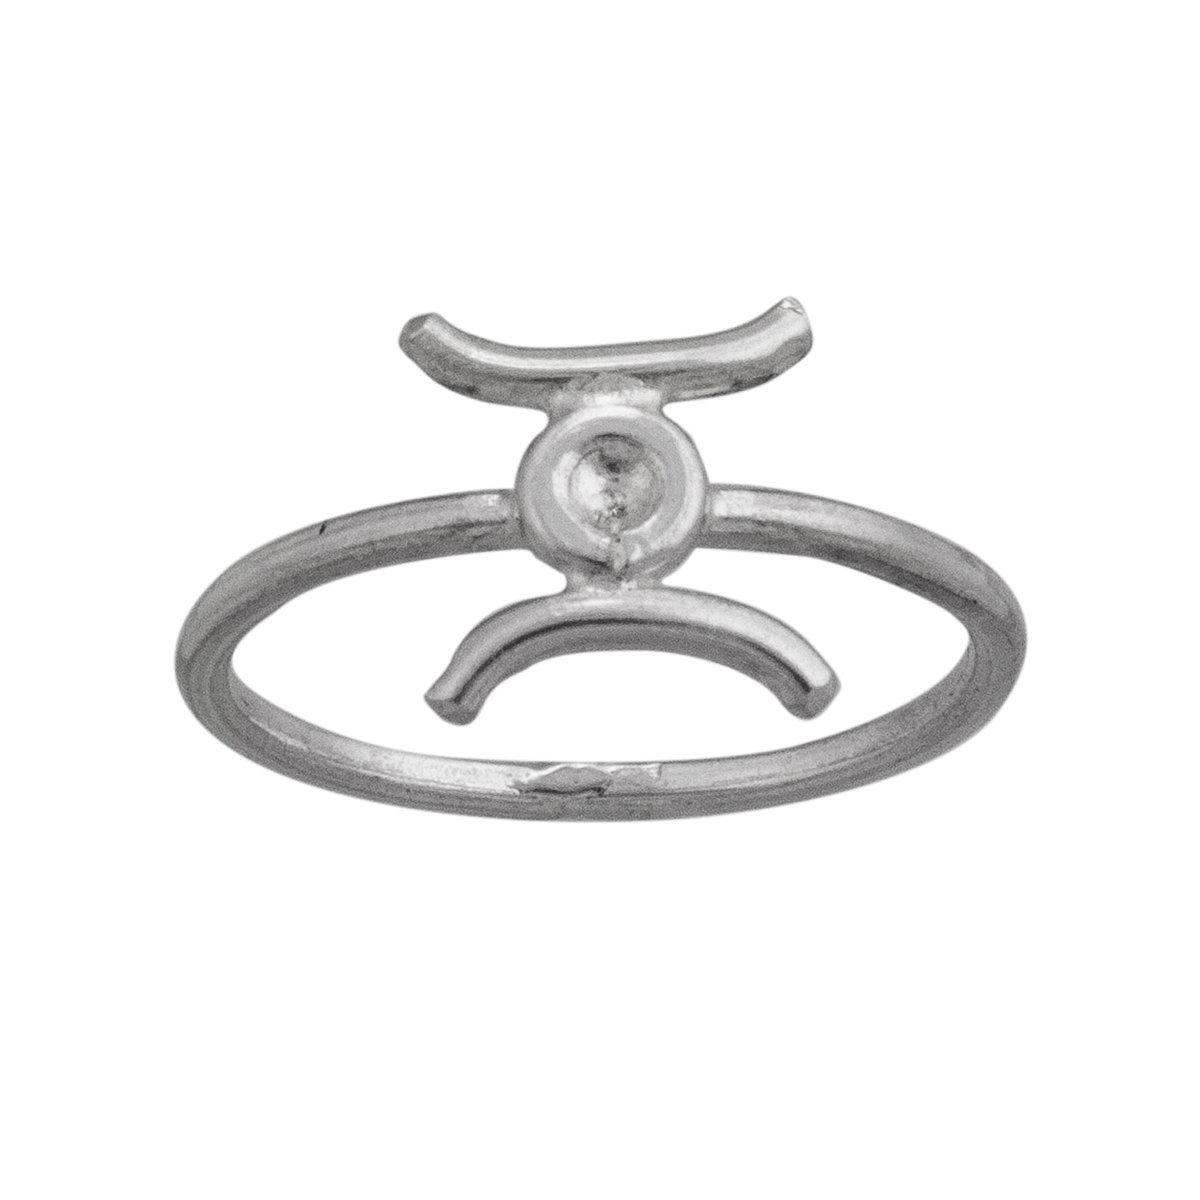 sterling-silver-gemini-ring - 1 - Charles Albert Inc